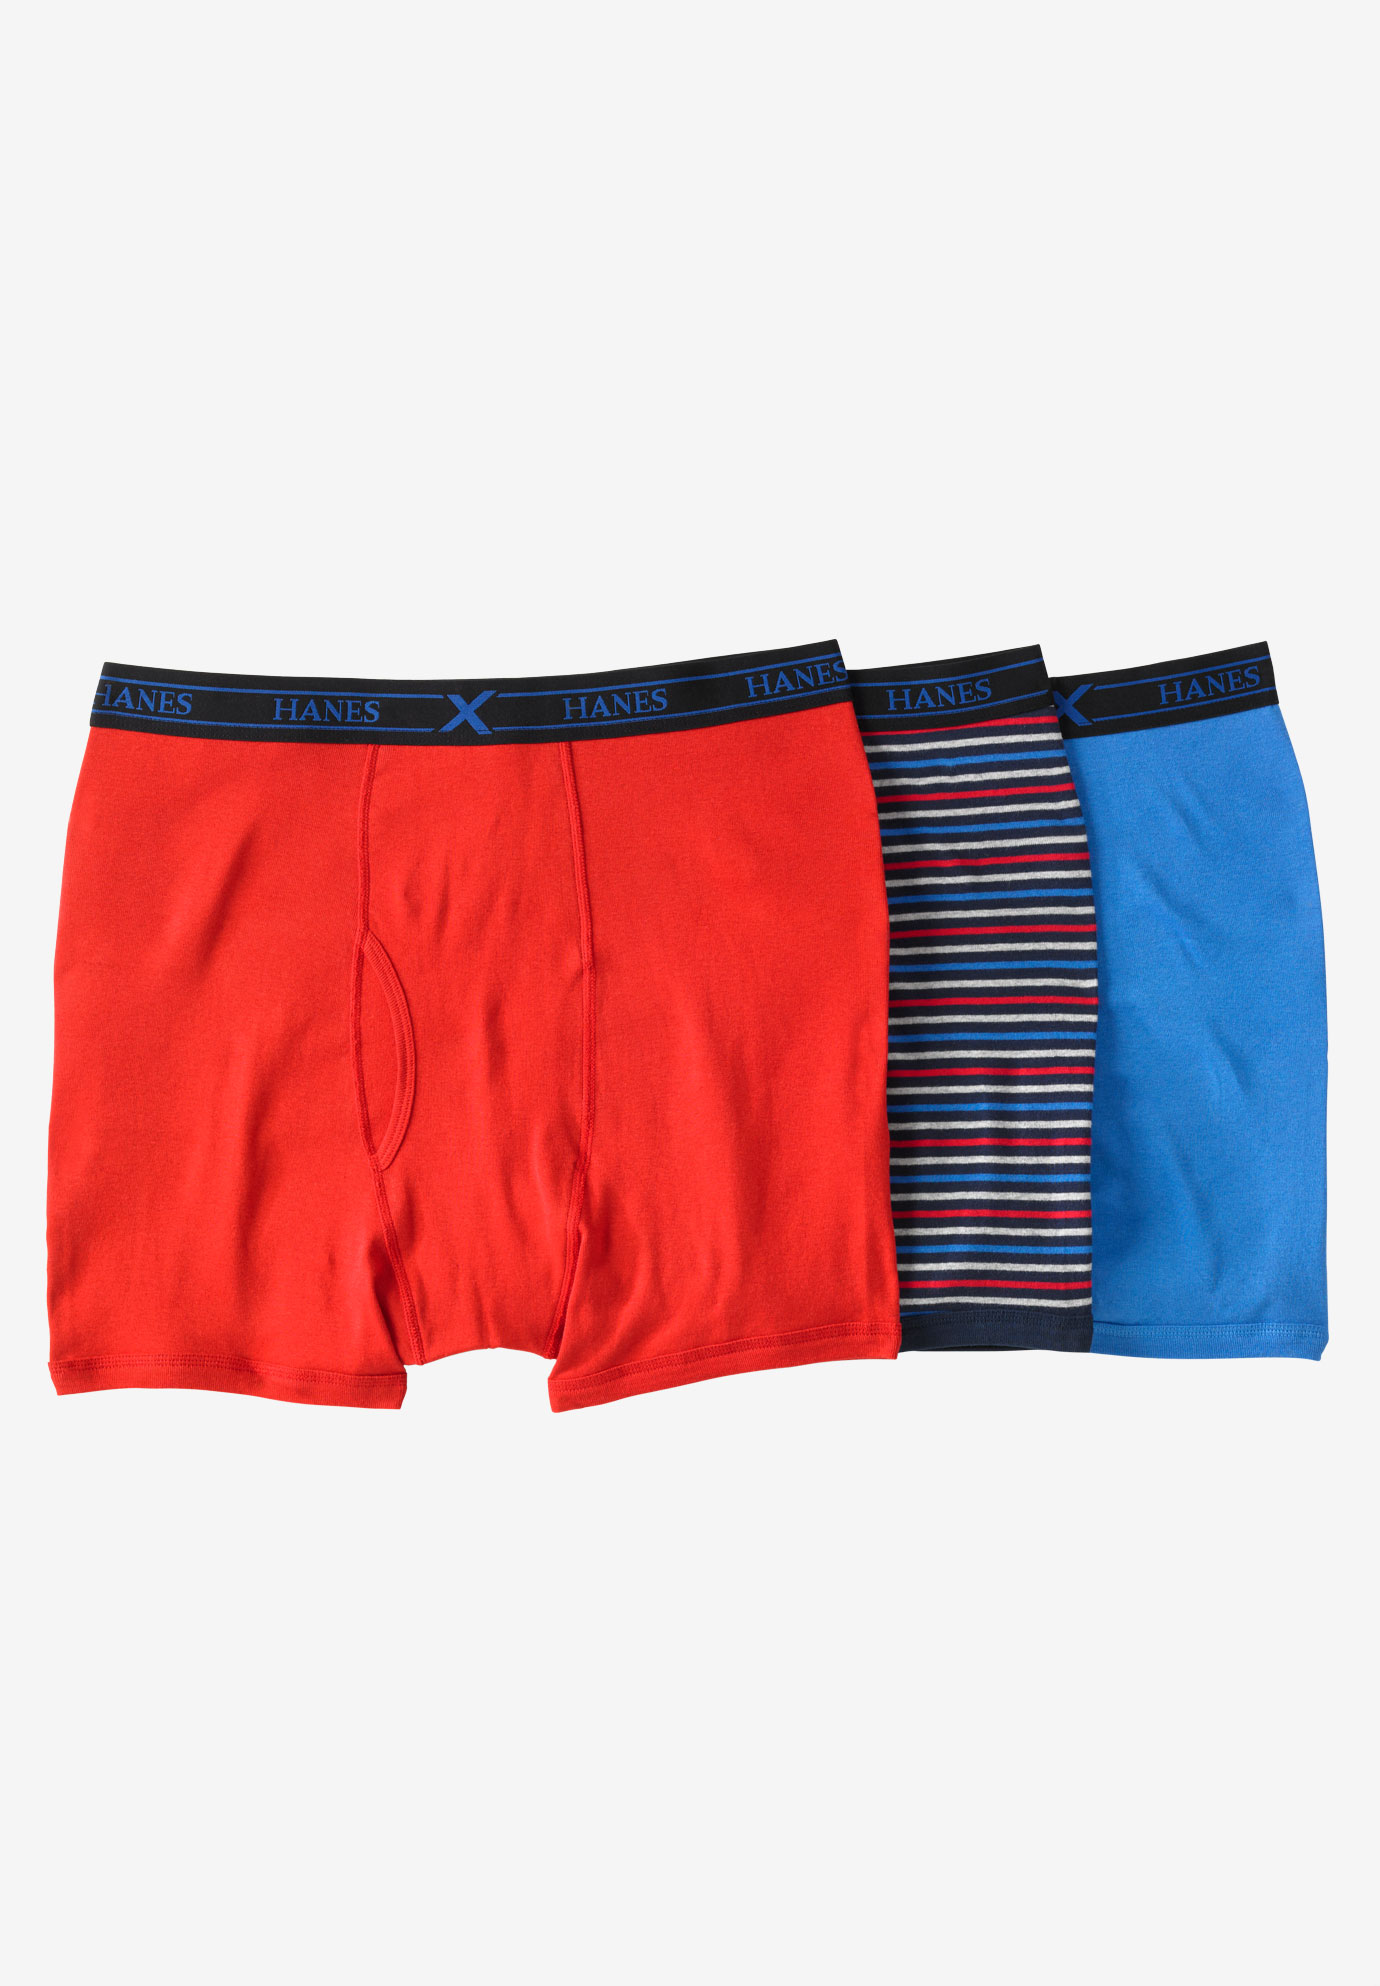 FreshIQ® X-Temp® Comfort Cool ® Boxer Briefs 3-Pack by Hanes®, BLUE RED MULTI